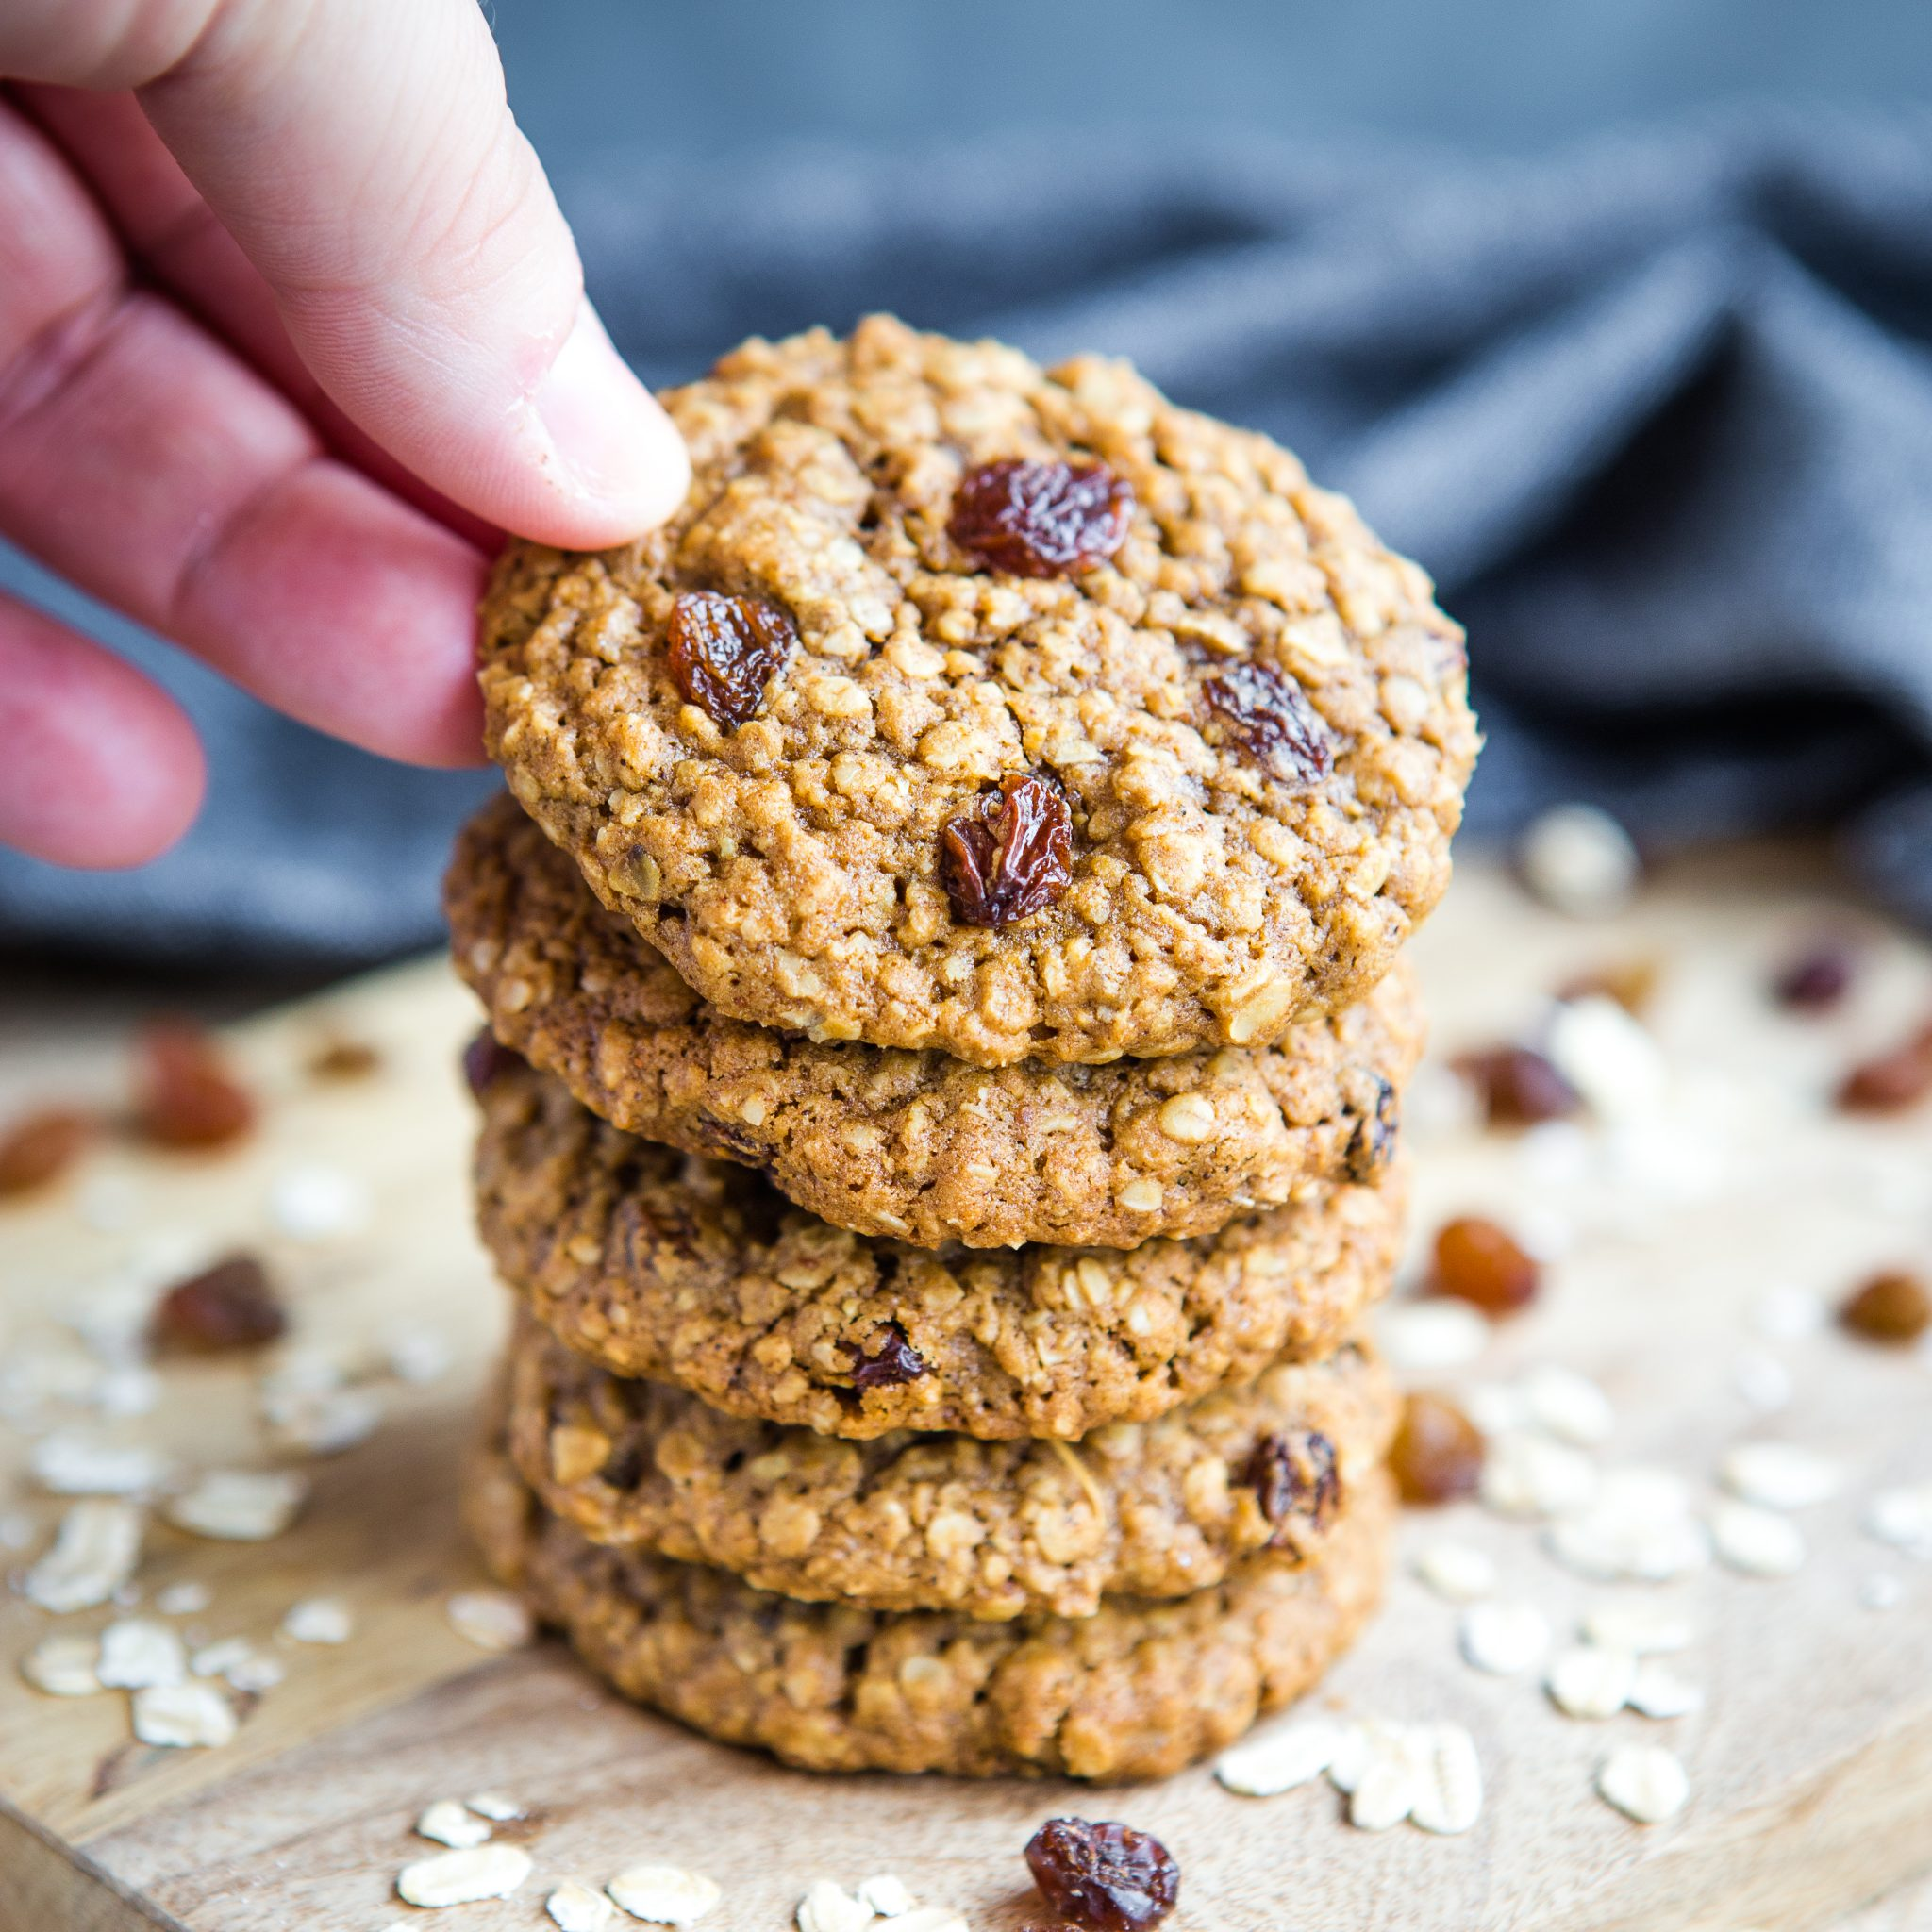 Forum on this topic: Molasses and Honey Oatmeal Cookies, molasses-and-honey-oatmeal-cookies/